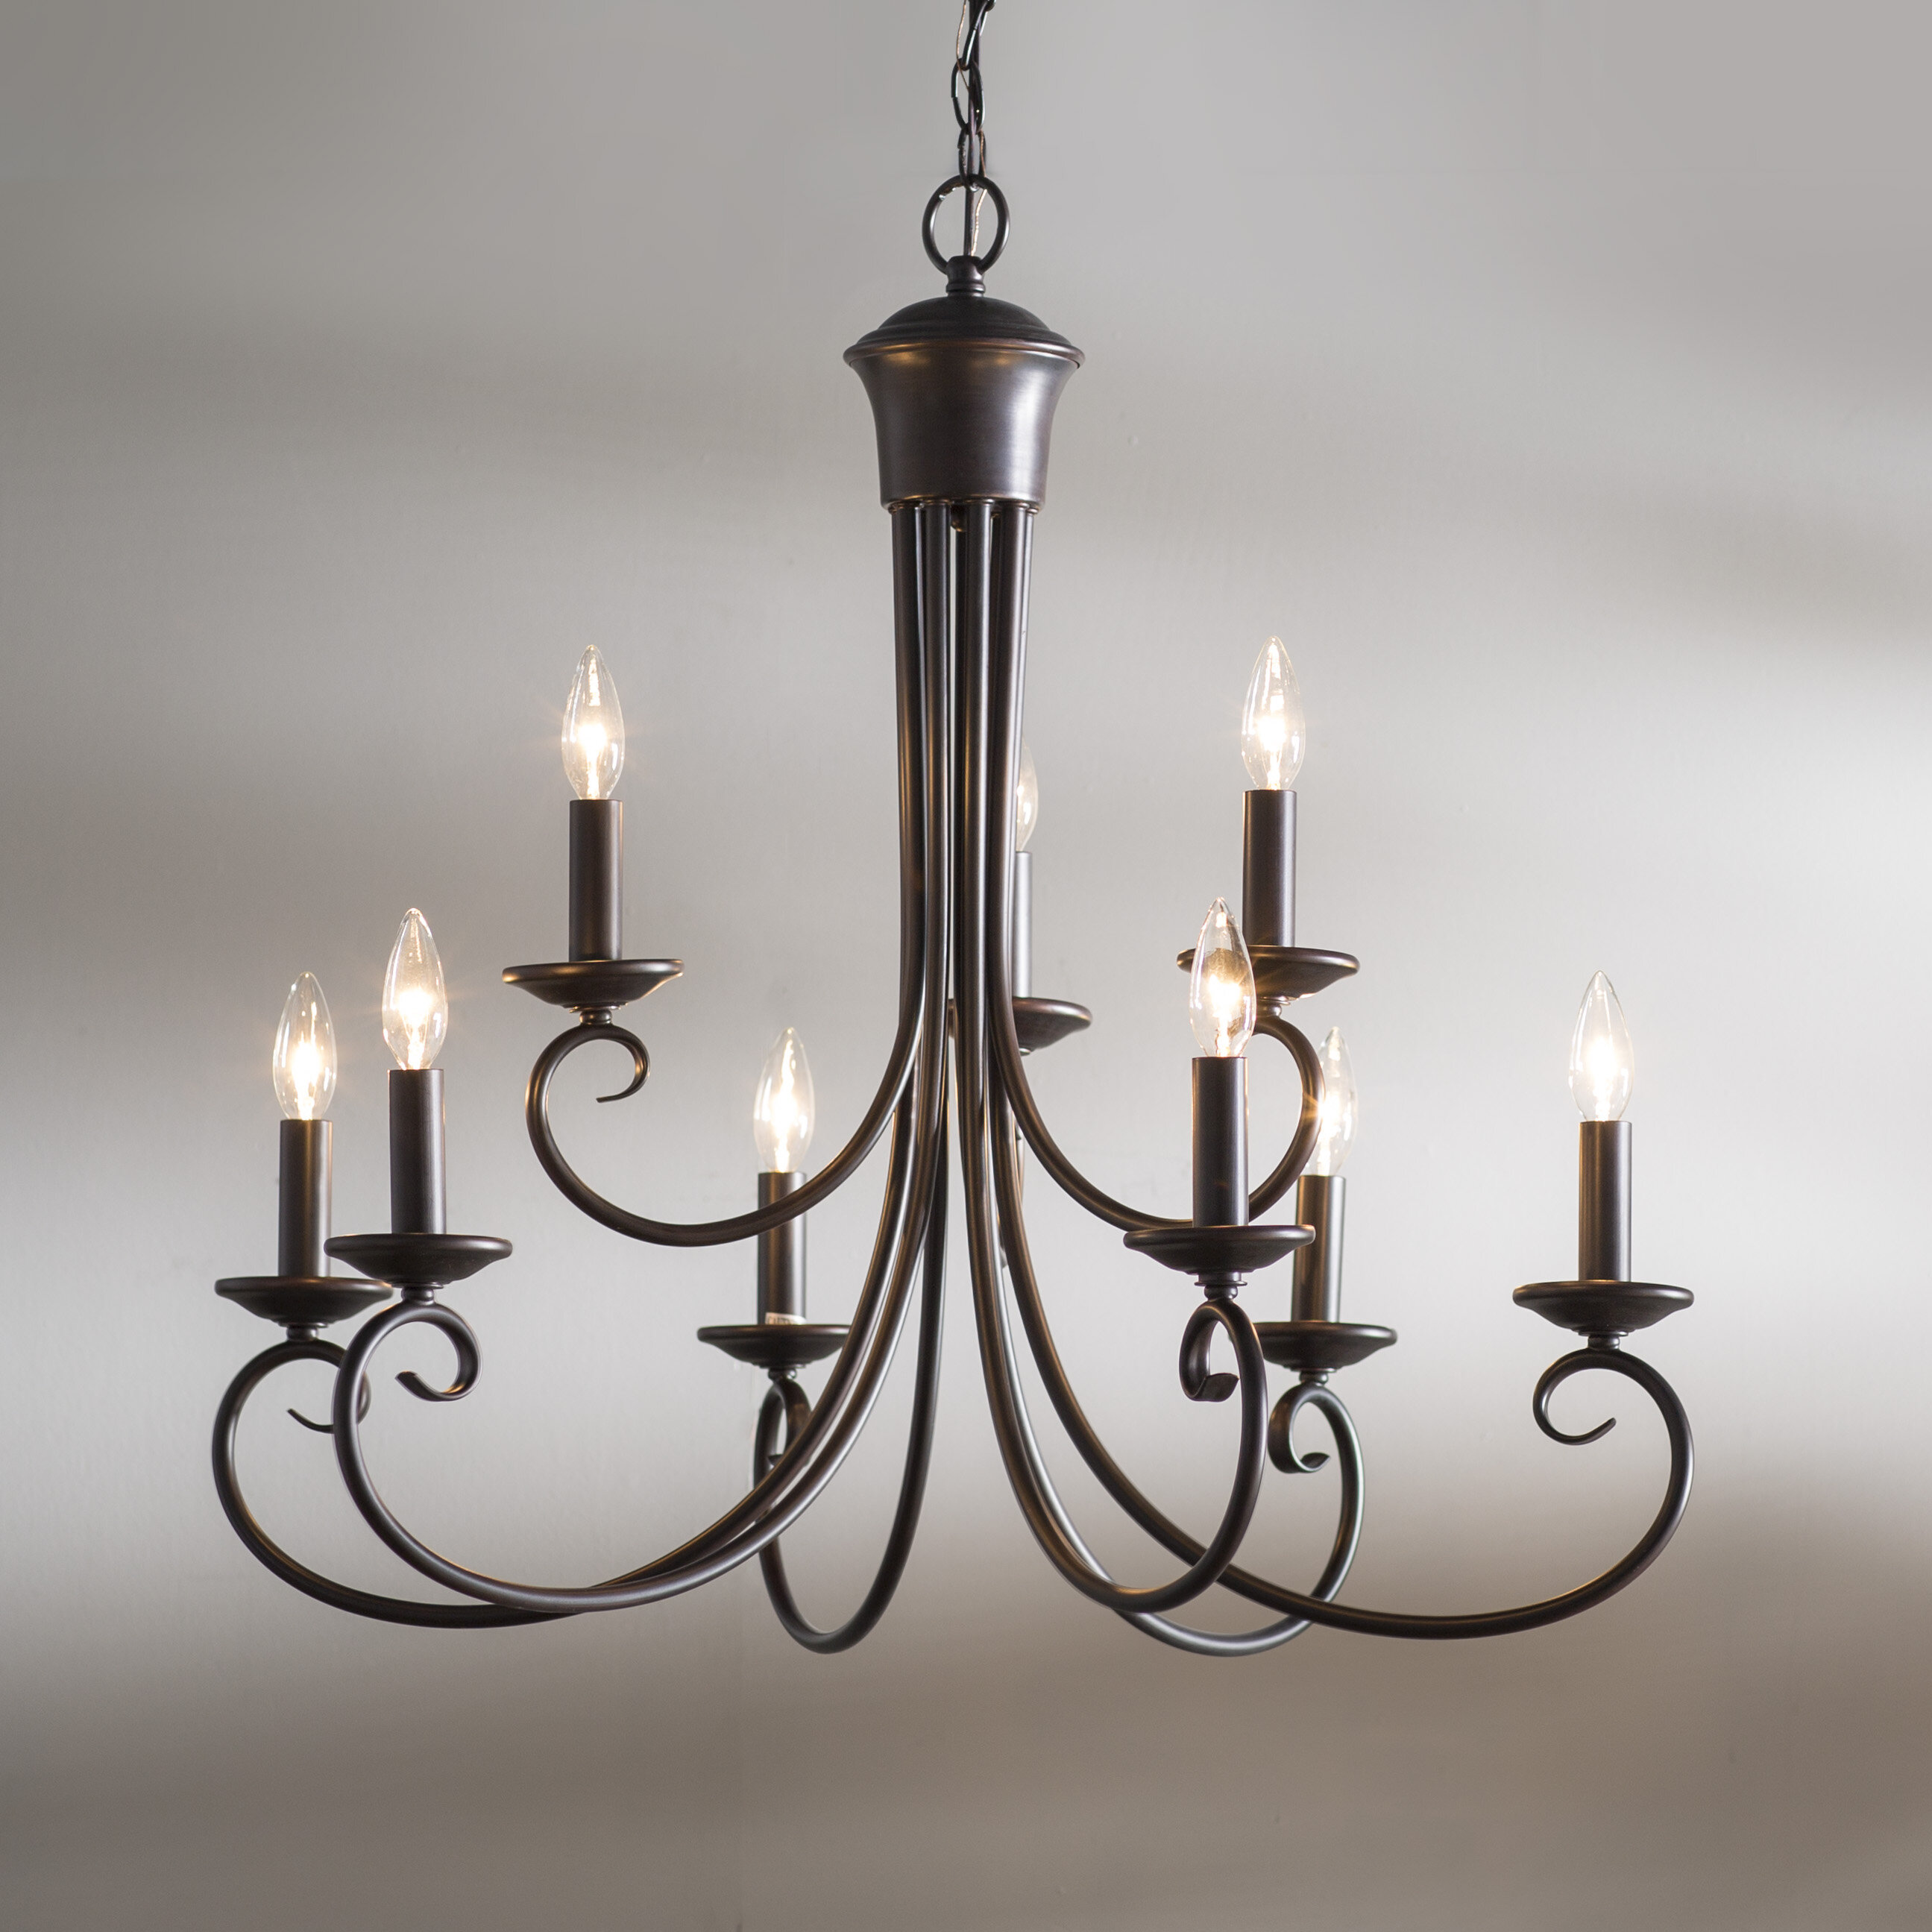 Astoria Grand Calafia 9 Light Candle Style Chandelier & Reviews